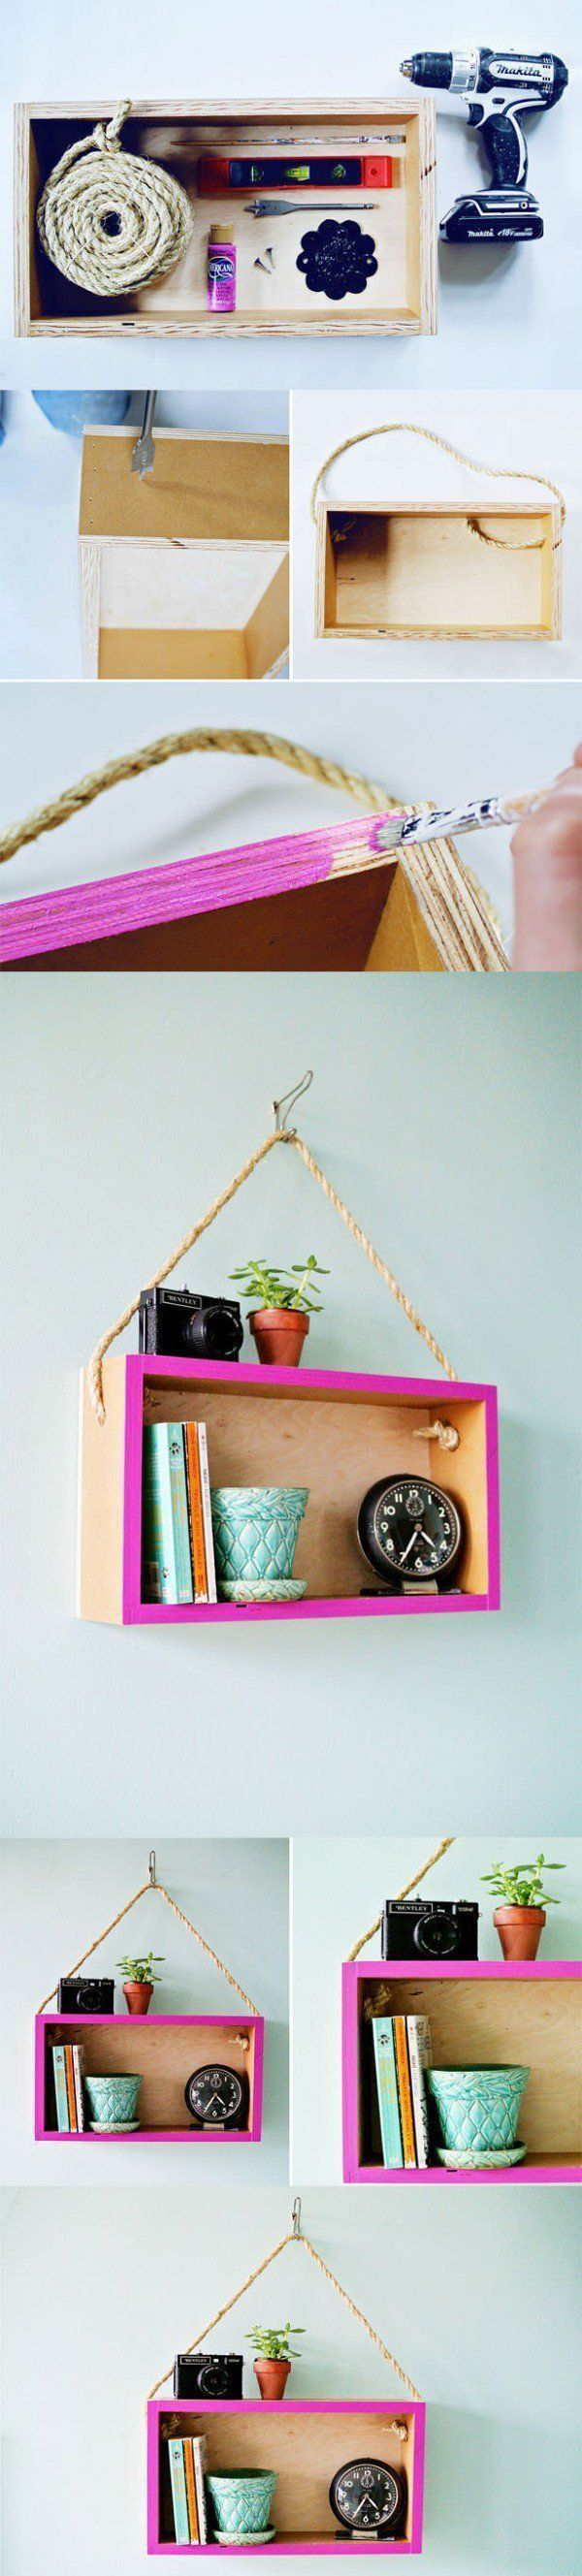 DIY Upcycled Wooden Box Into Hanging Shelf DoItYourself Ideas We are want to